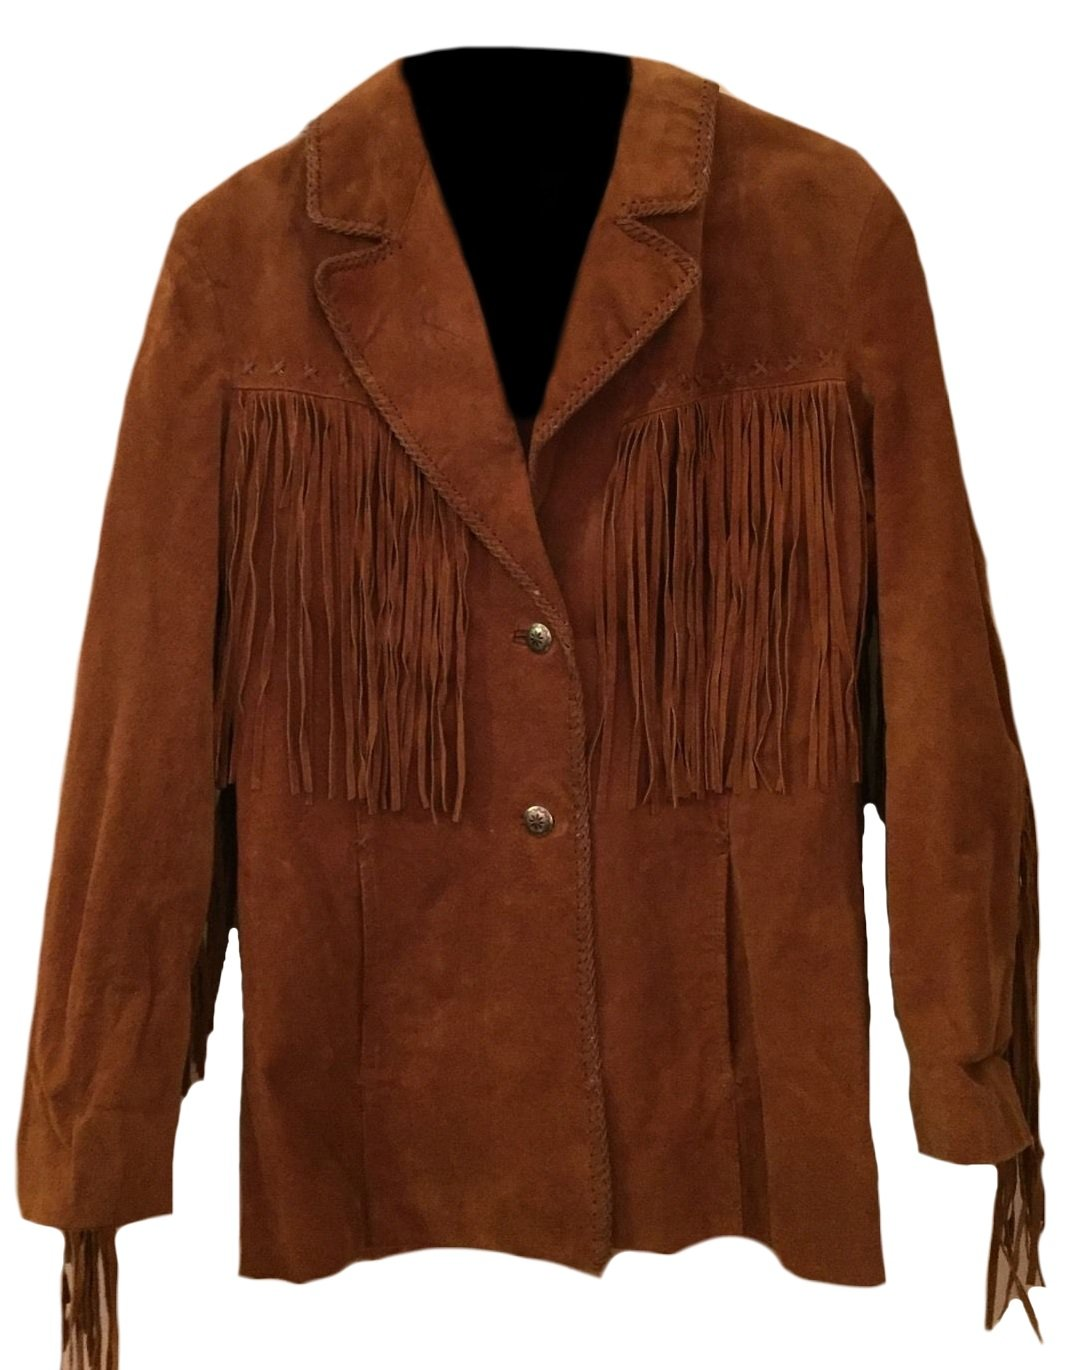 Classyak Men's Western Top Quality Suede Coat with Fringes Suede Brown 3X-Large